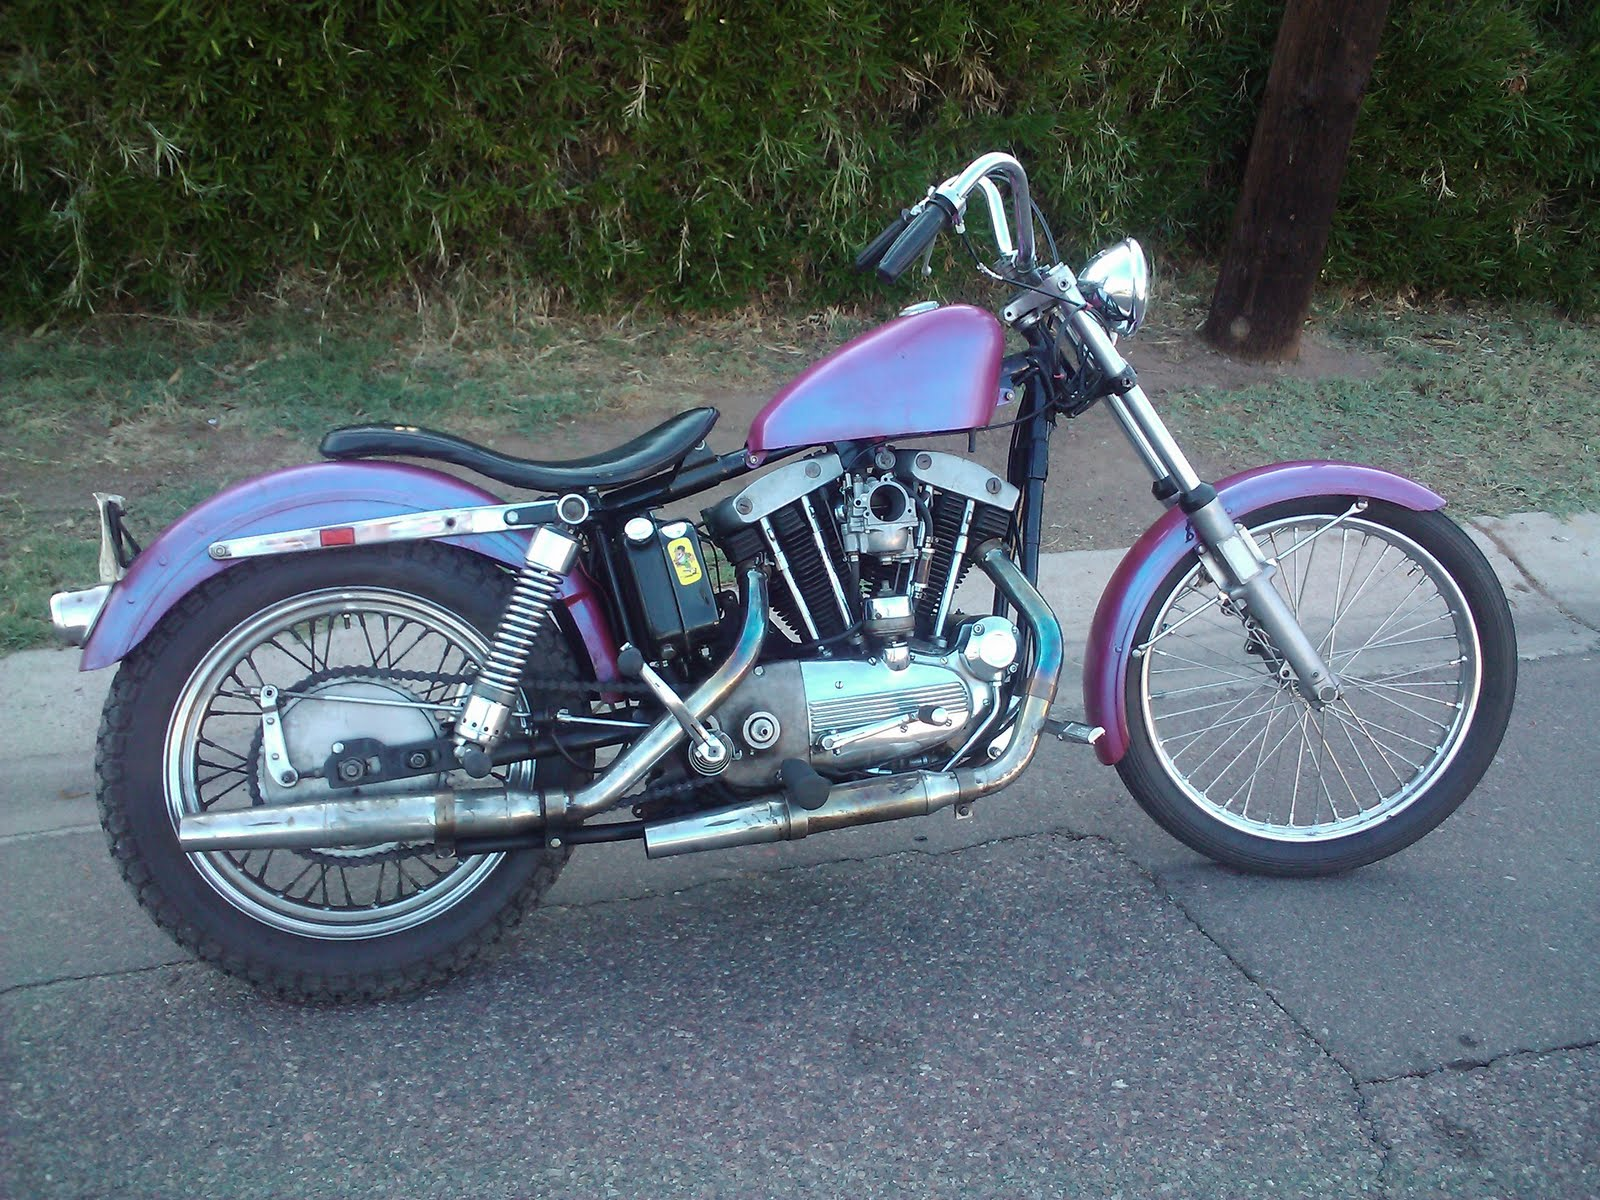 Things I H8 Hate 1970 Xlch Sporster For Sale Harley Davidson Sportster My Little Is Ready A New Home She Real Strong Runner And Has Never Let Me Down Lots Of Old Goodies On Her